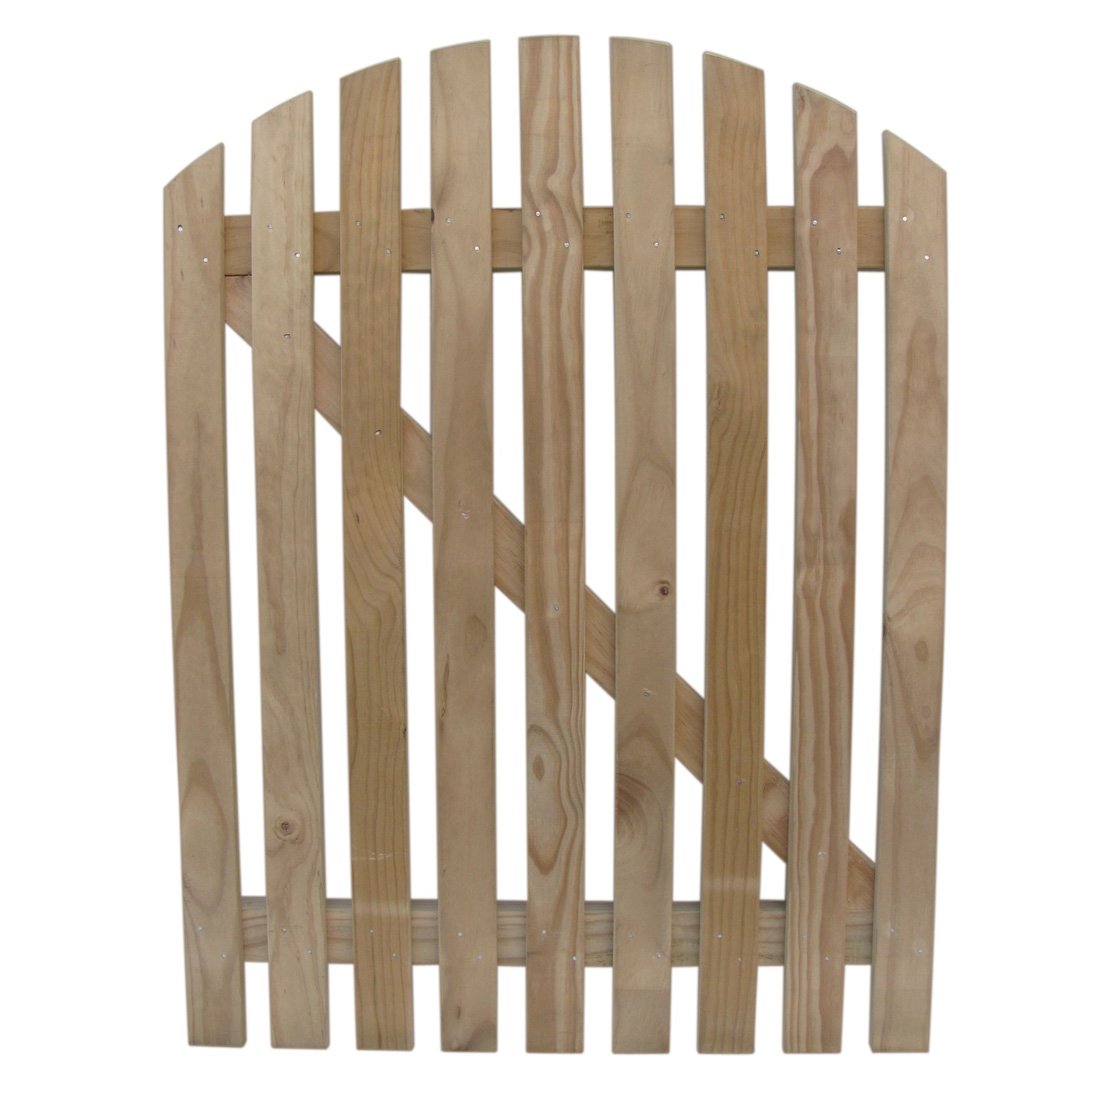 Radiata Round Picket Wooden Gate H3.2 Treated 1200 x 900mm